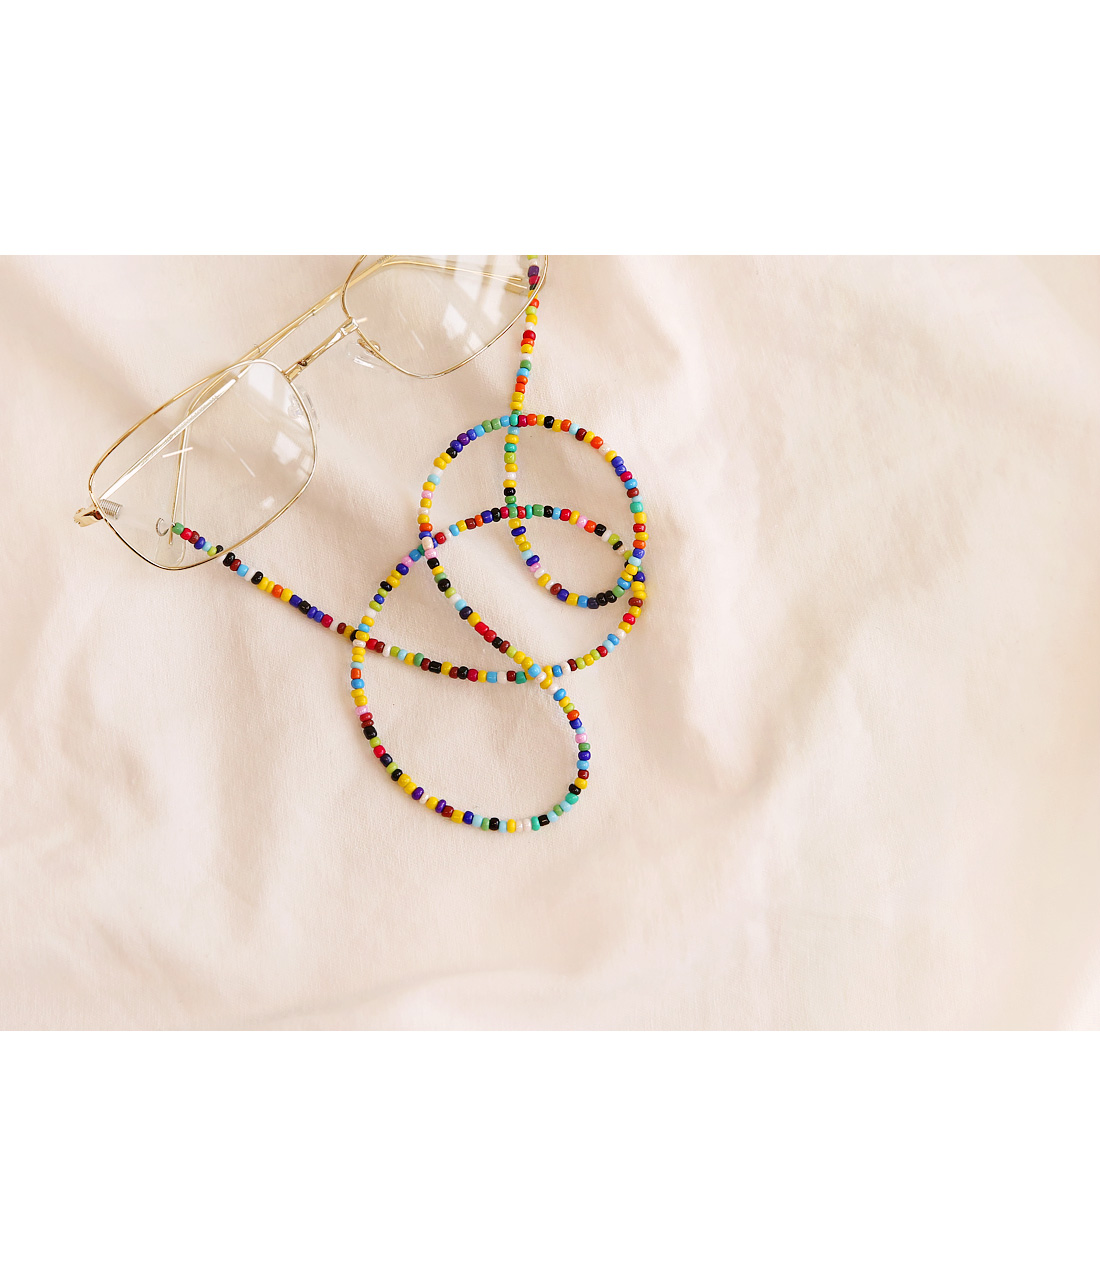 LEND COLOR BEADS GLASSES STRAP